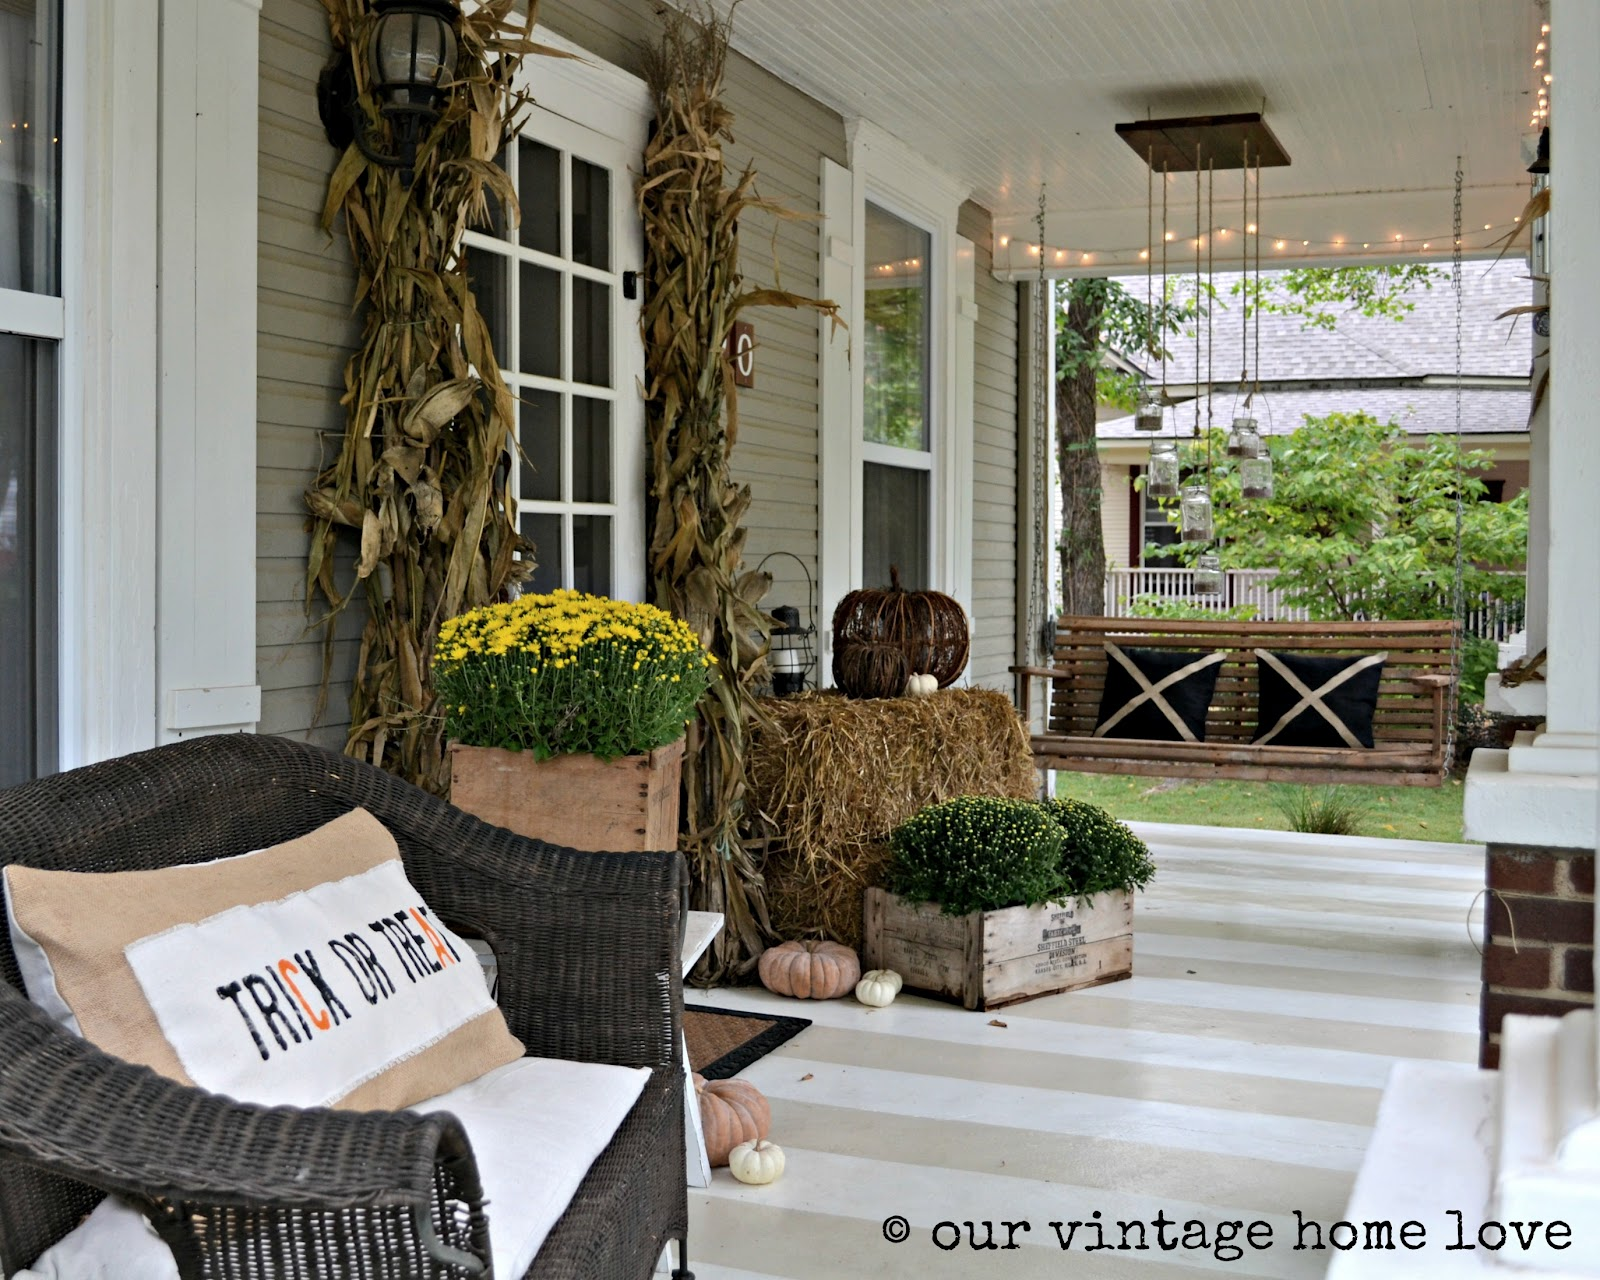 Vintage home love autumn porch ideas for Outdoor front porch decor